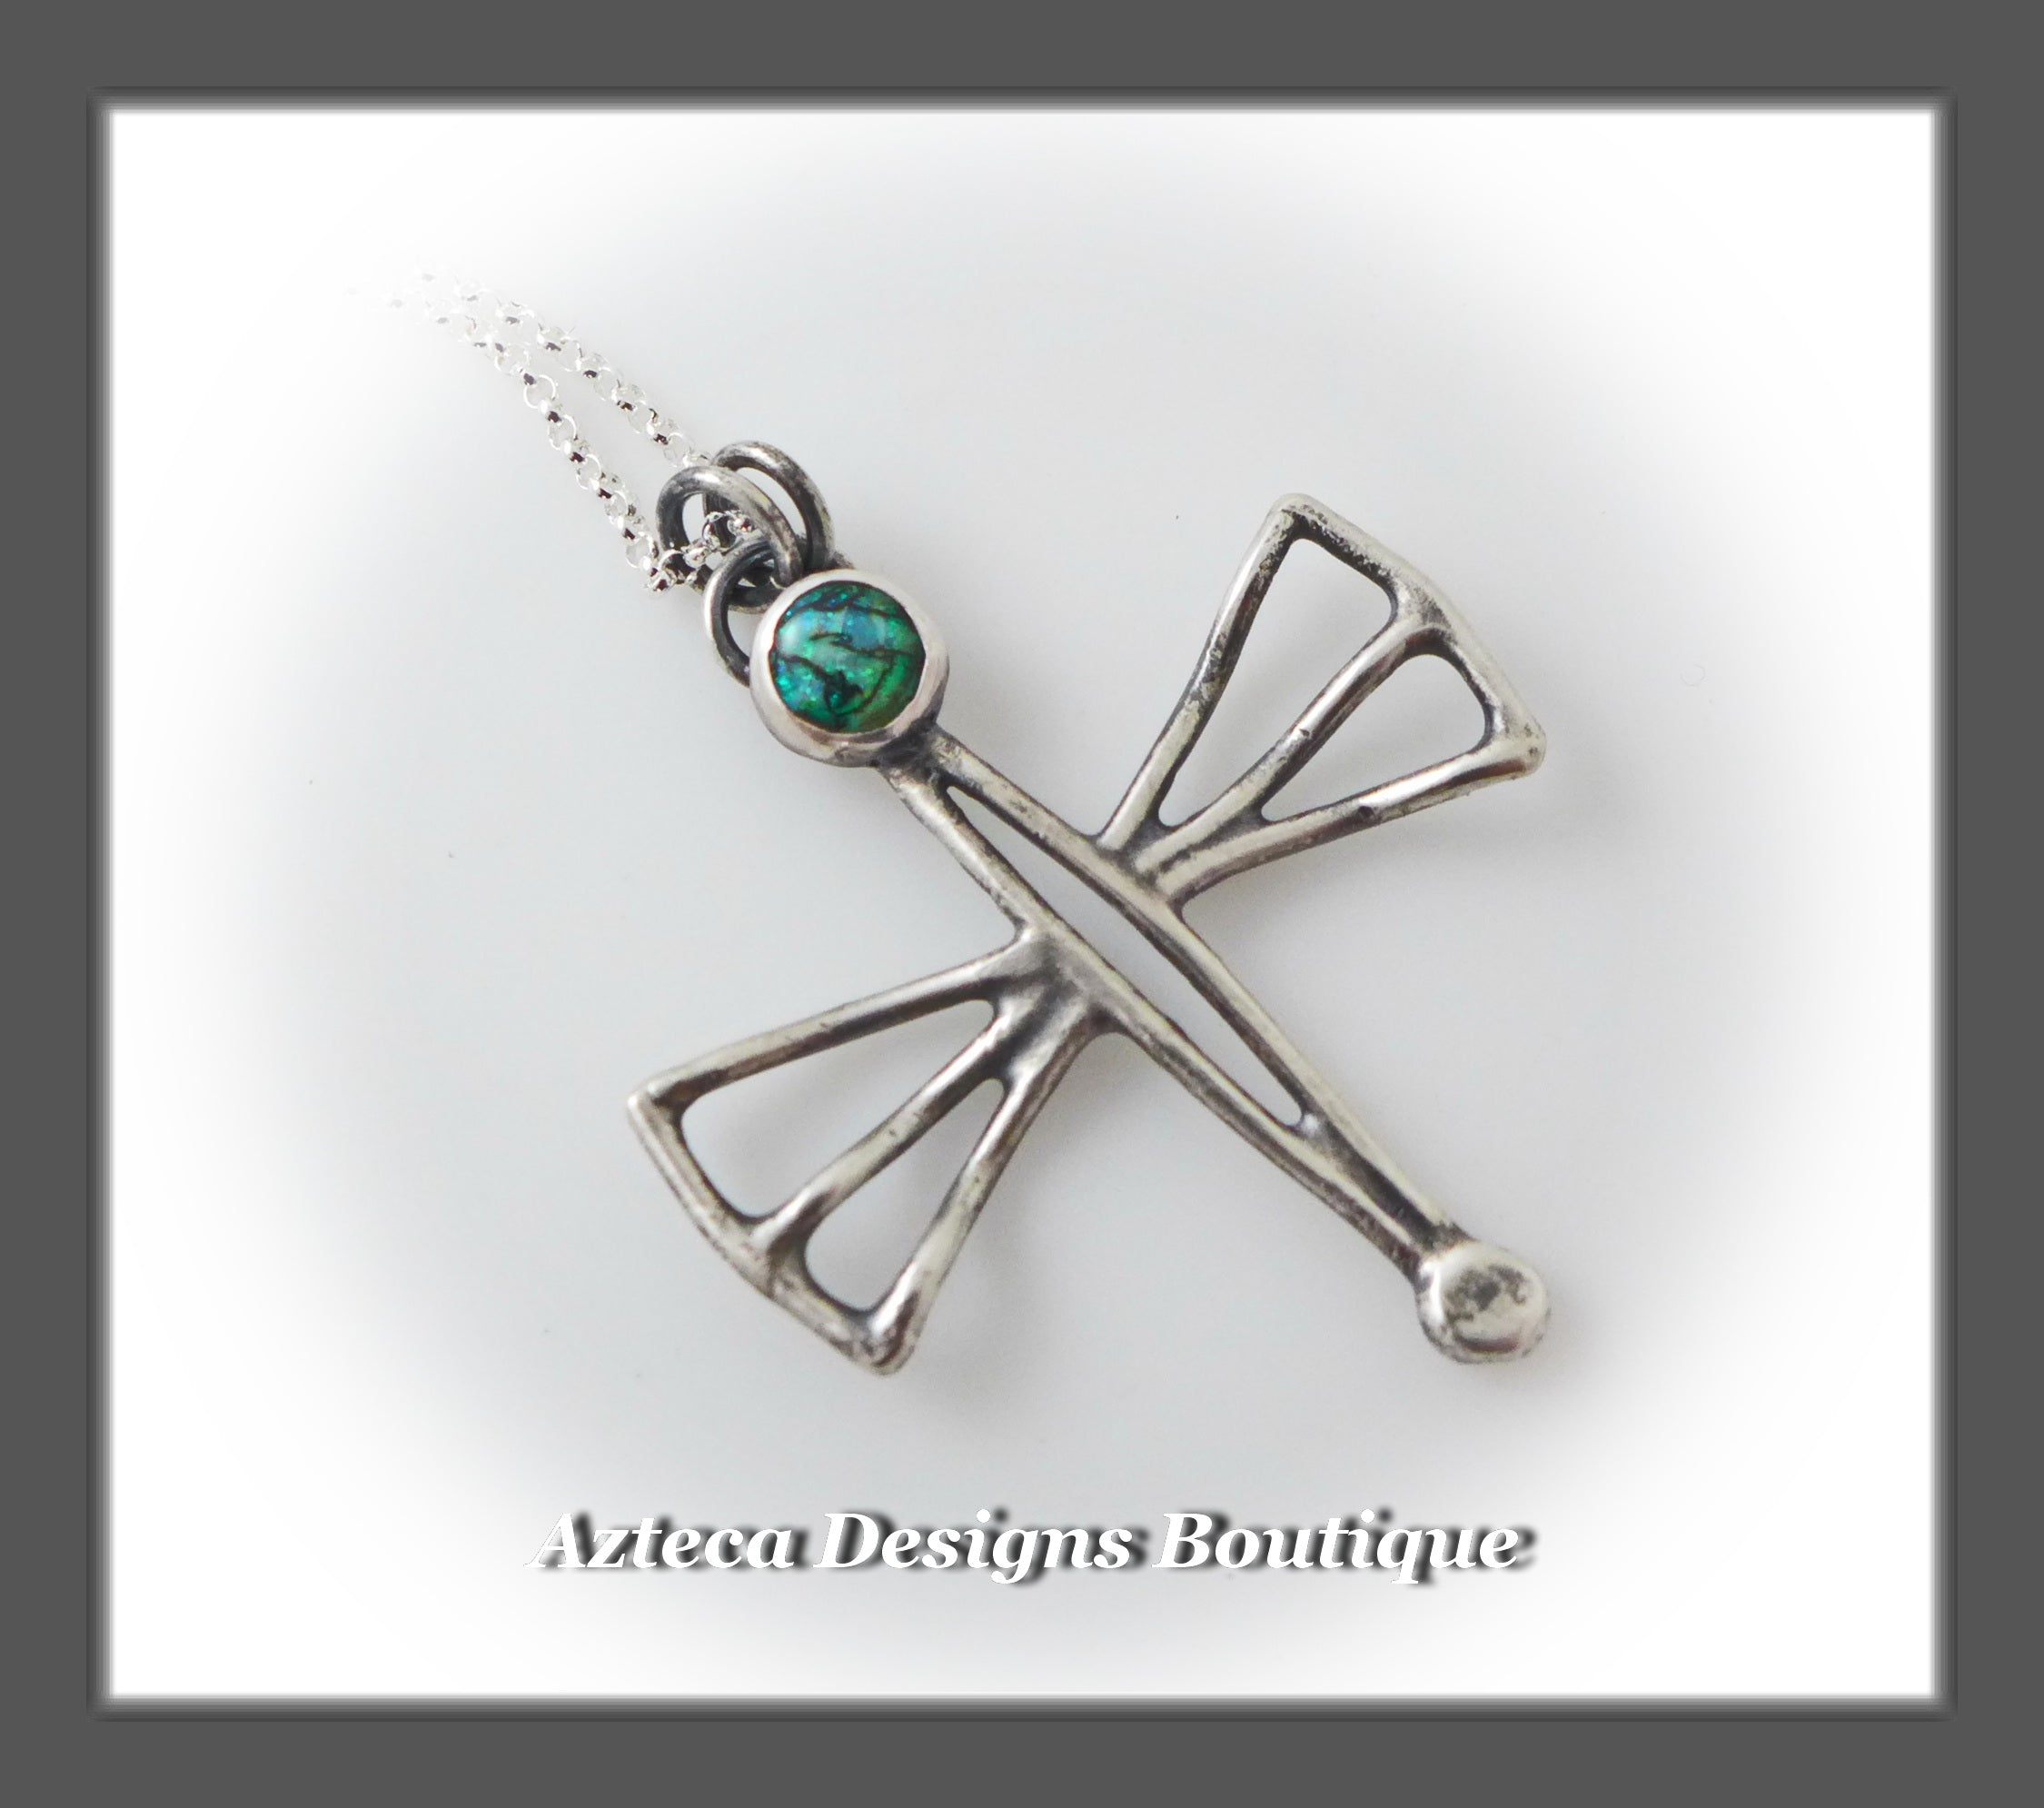 Cultured Opal + Sterling Silver + Hand Fabricated Dragonfly Necklace